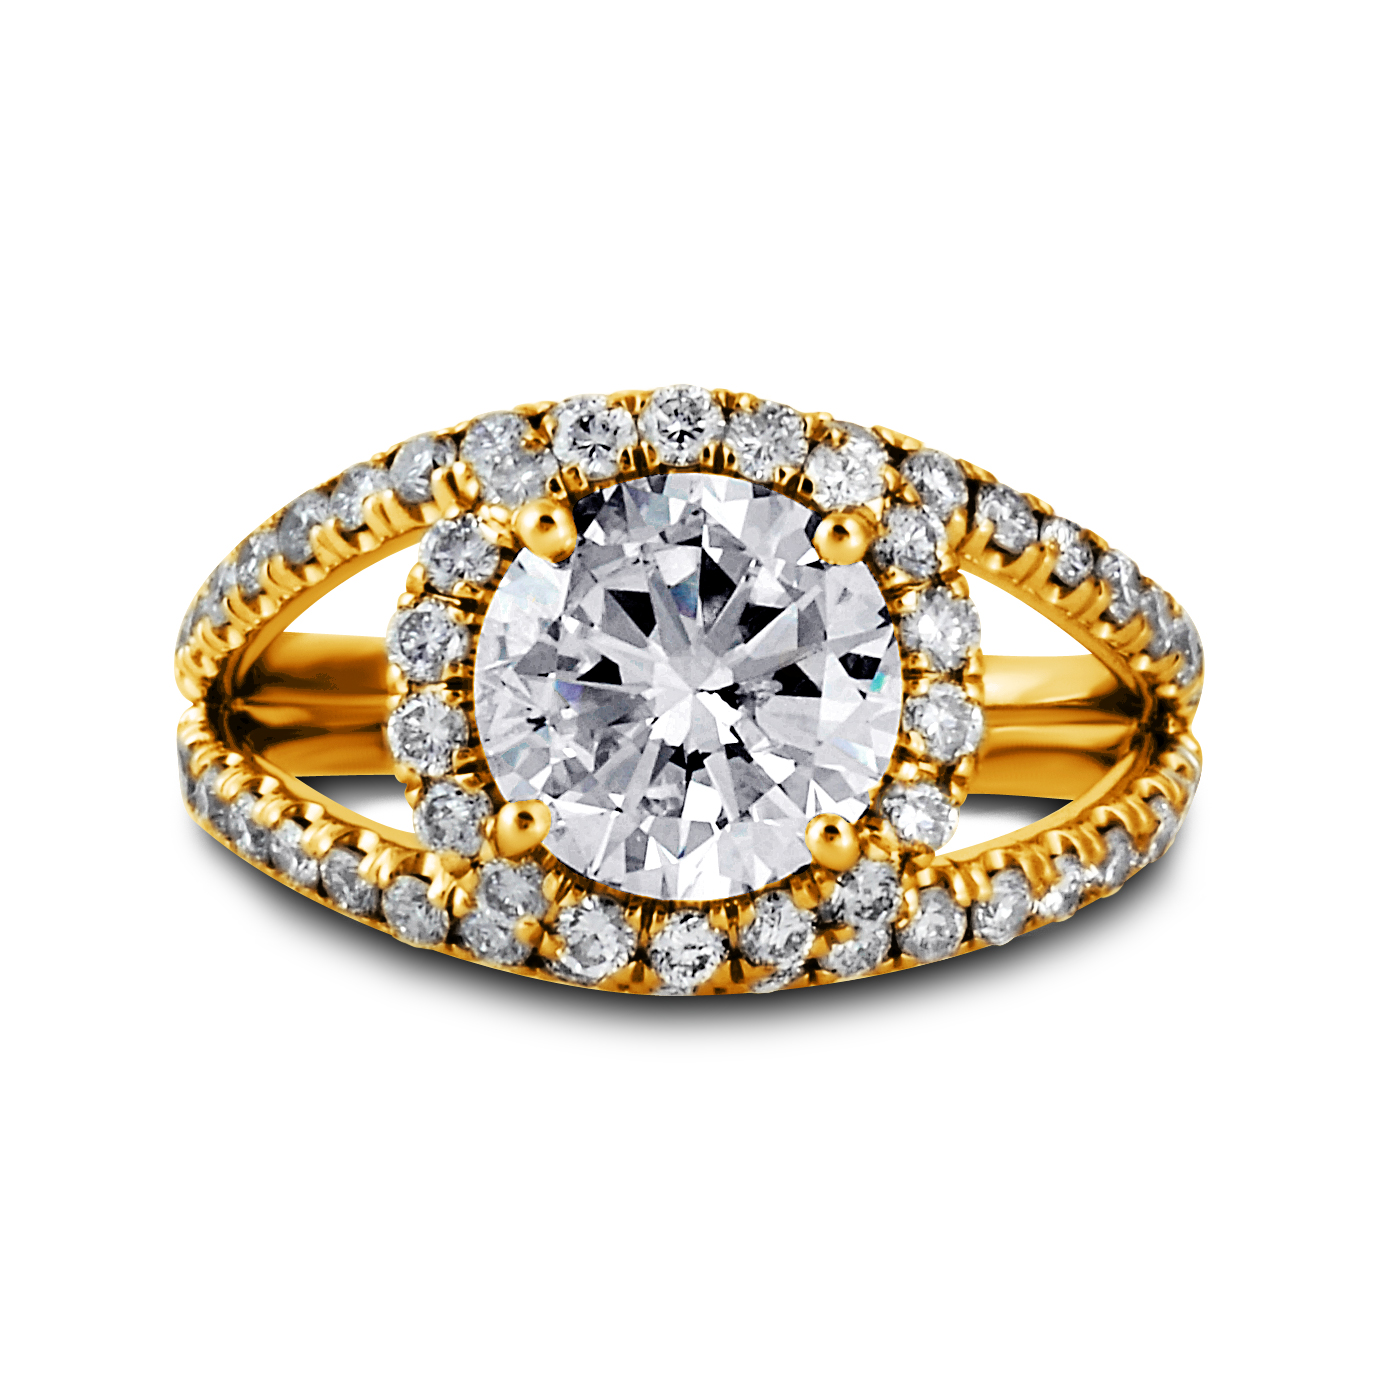 Double Band Diamond Halo Engagement Ring | Set in 14k or 18k Yellow Gold